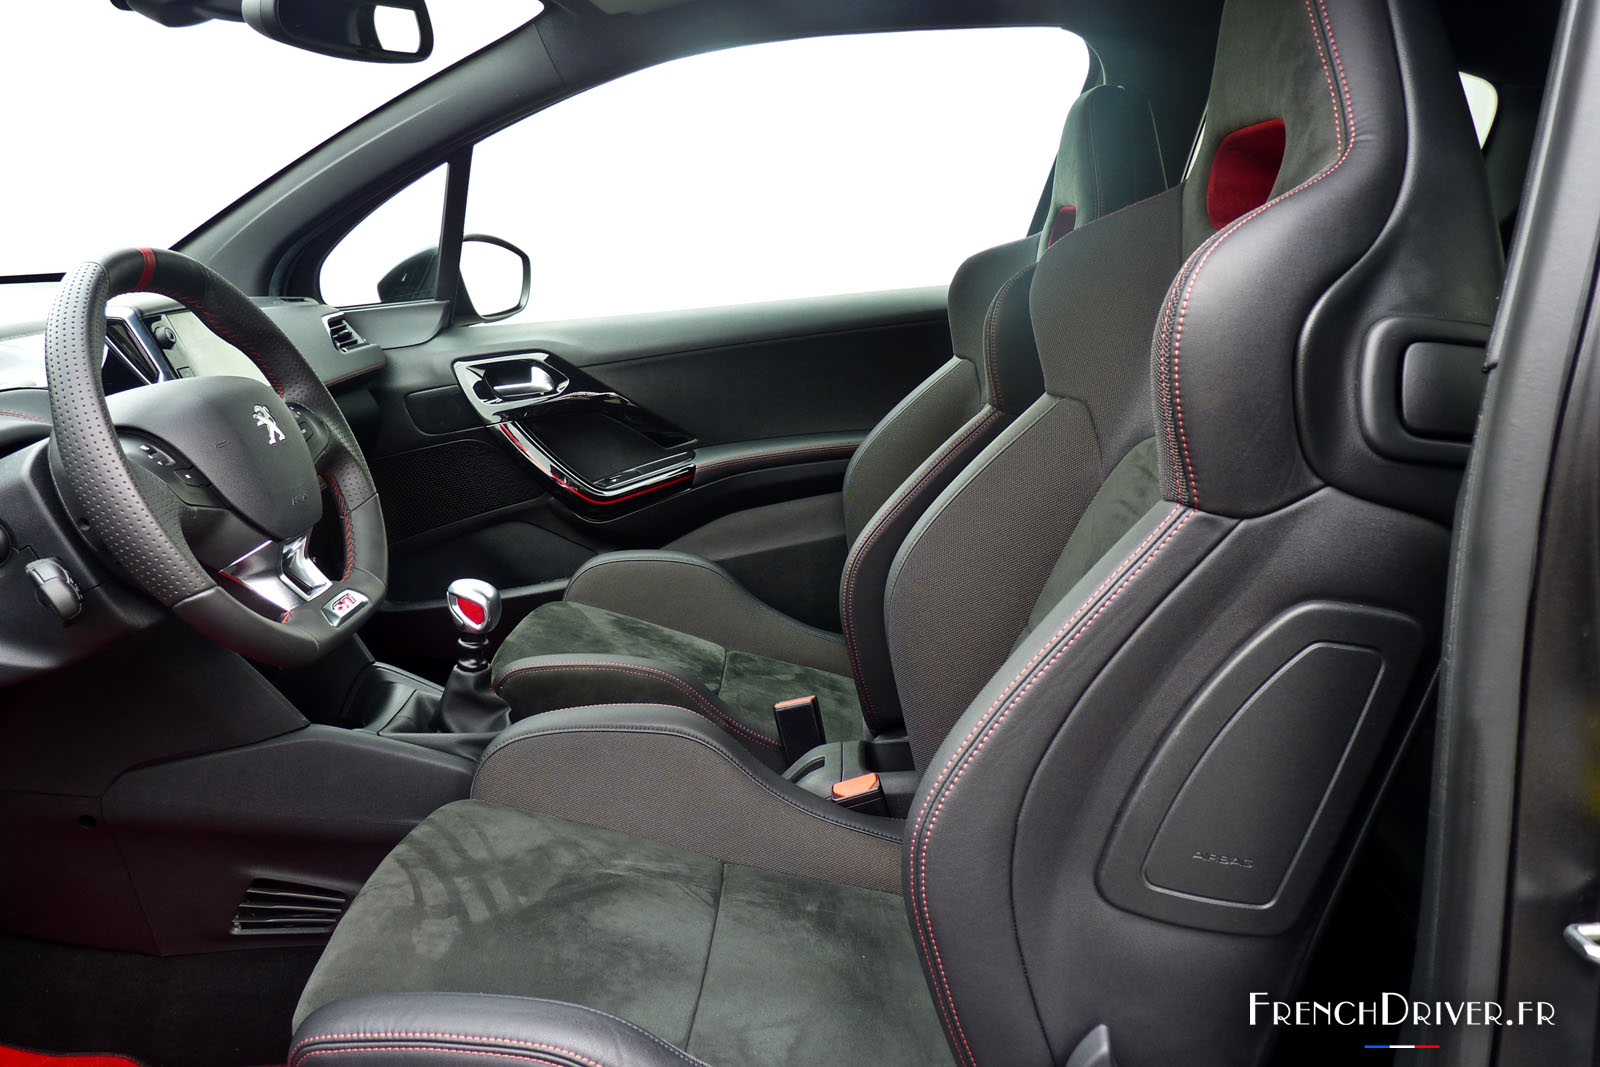 essai de la peugeot 208 gti 30th l 39 exemple suivre french driver. Black Bedroom Furniture Sets. Home Design Ideas